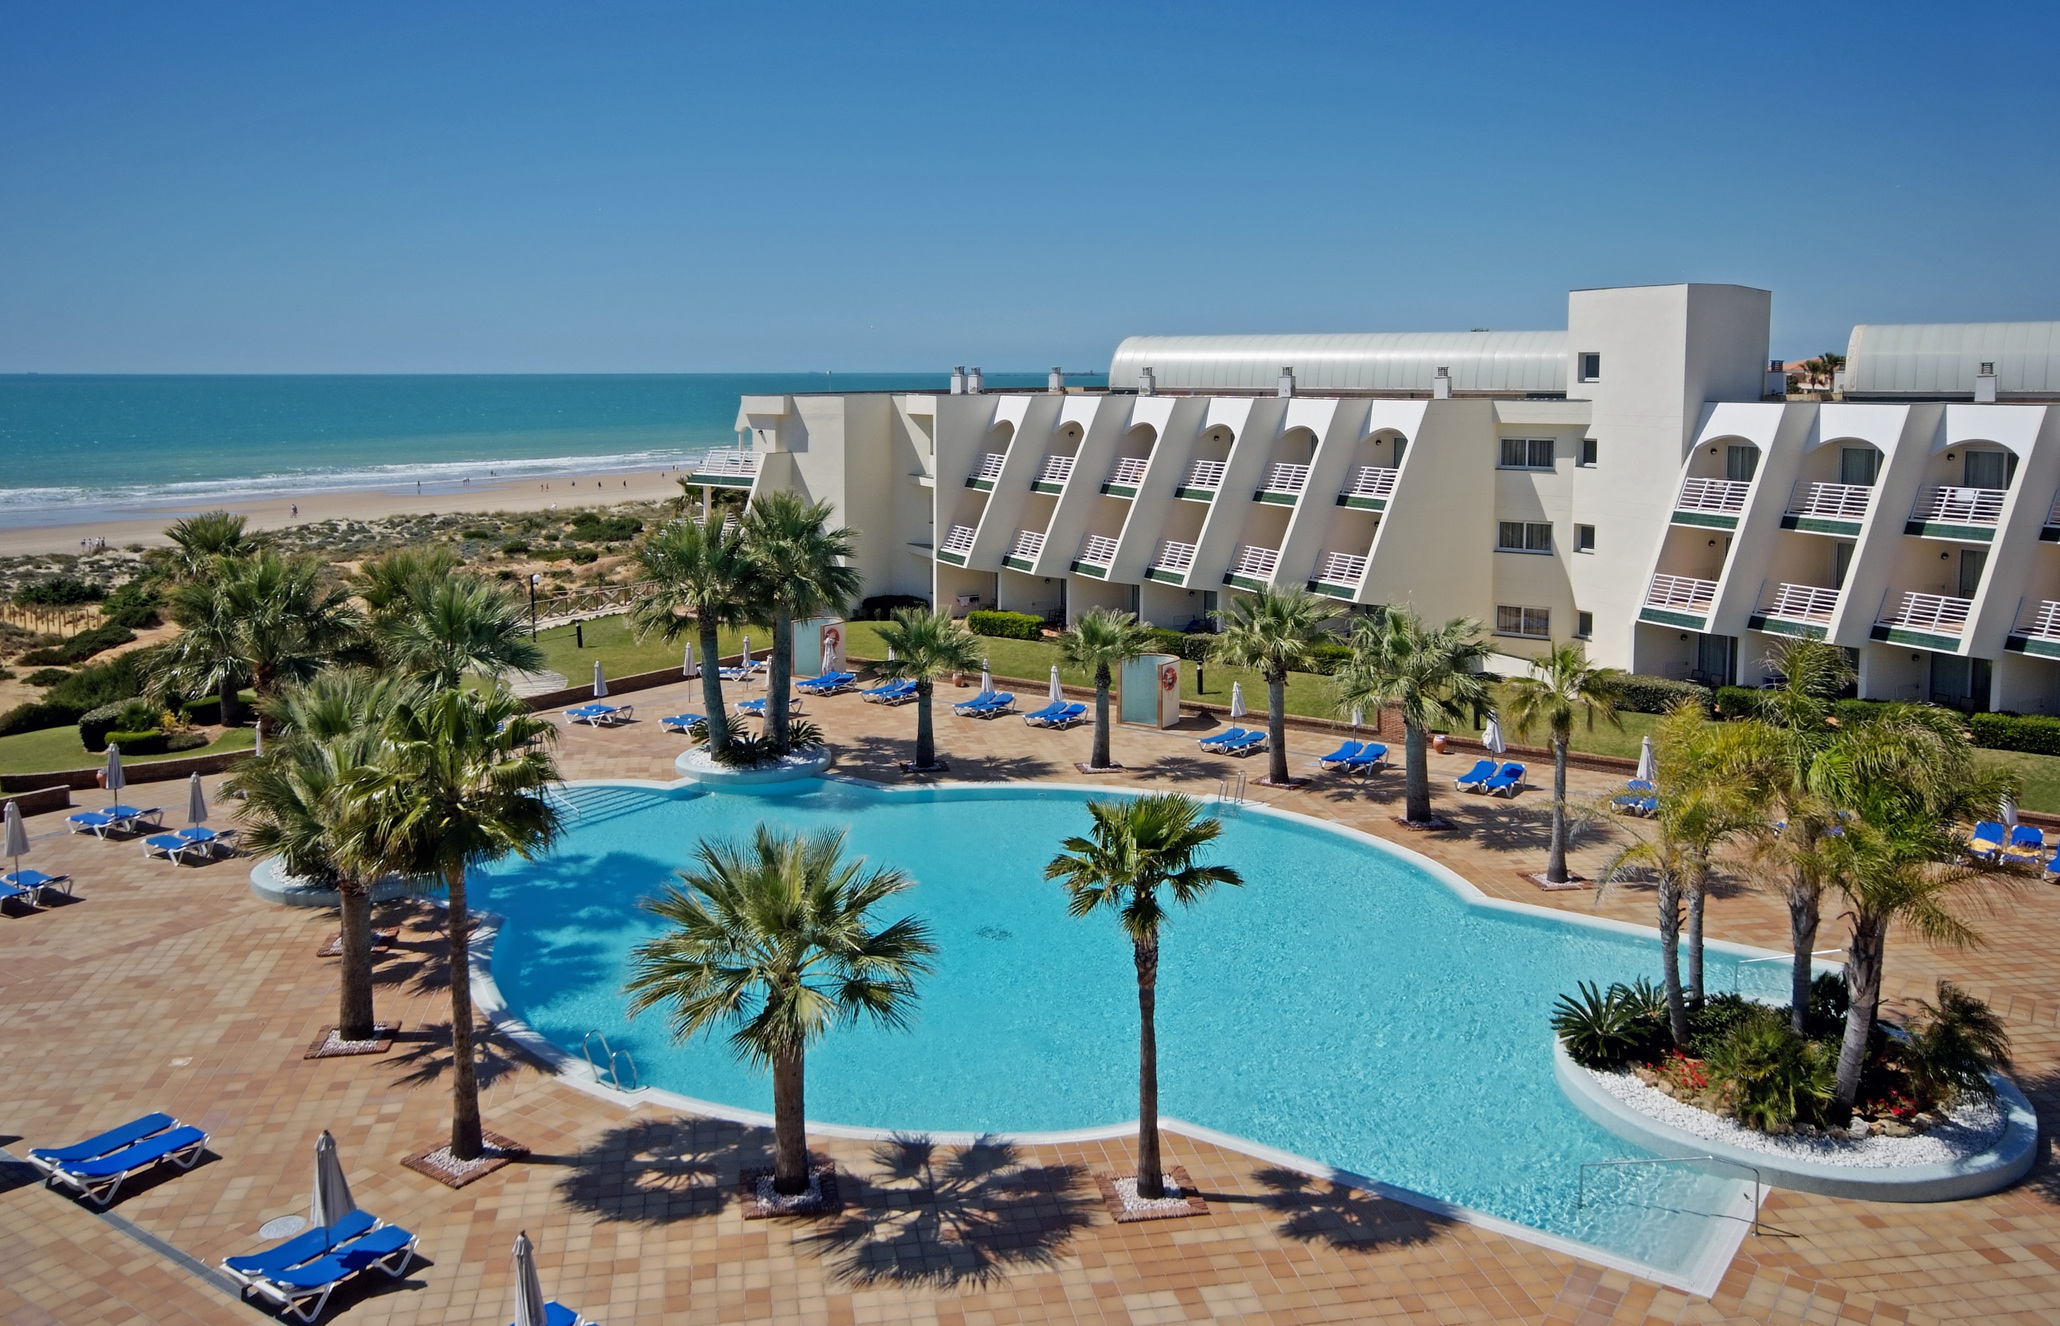 Disabled Holidays Confortel Islantilla Hotel Huelva Costa De La Luz Spain